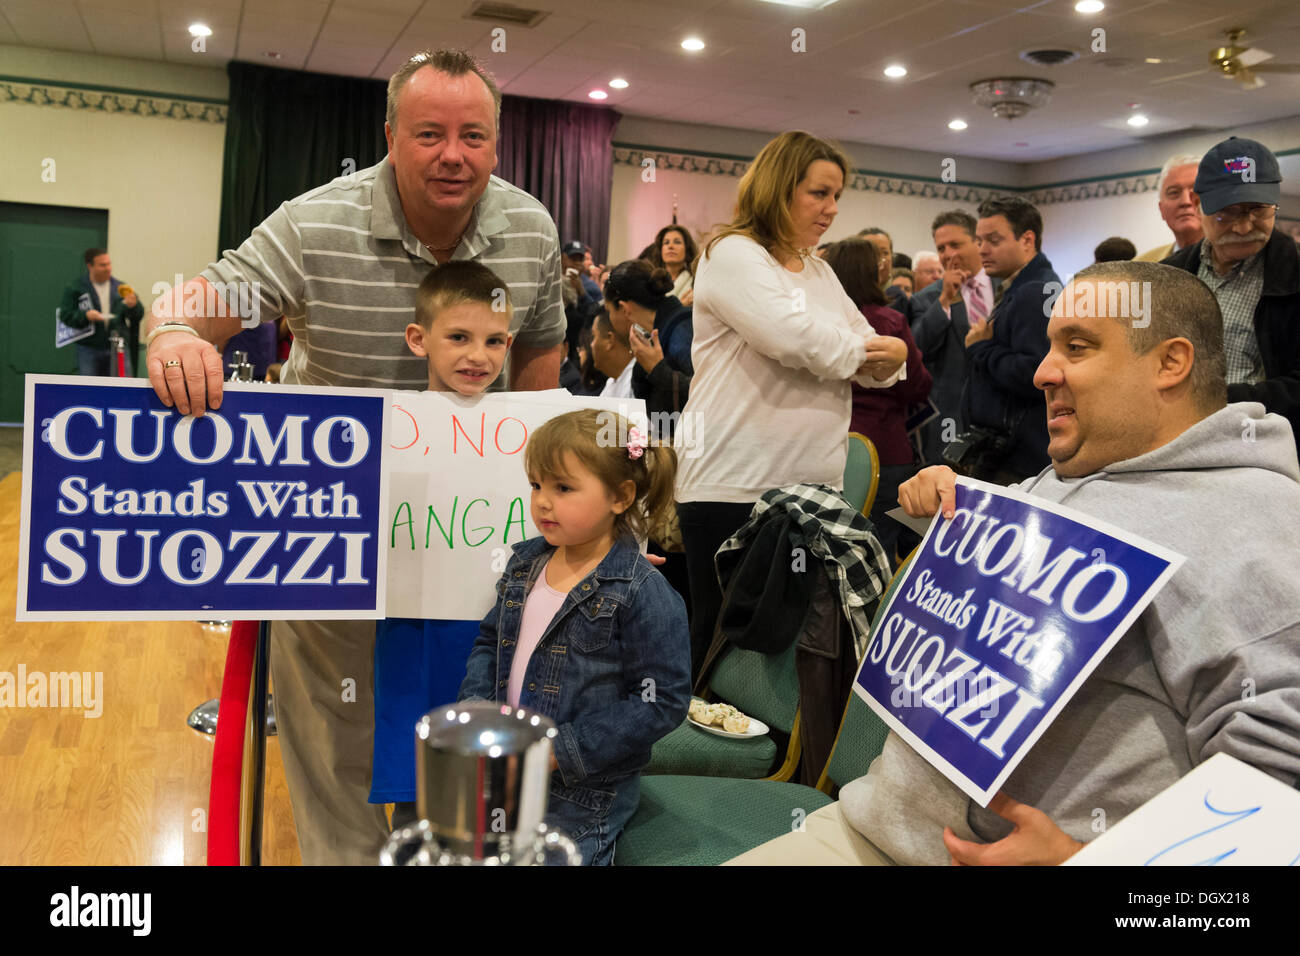 Albertson, New York, U.S. 26th October 2013. L-R, KEVIN DOOLIN and FINNEGAN CORCORAN-DOOLIN, 8, of Bellmore, RILEY GALANTA, 3, of Mineola, and RANDY KOVAR of Massapequa, are in the audience when New York Governor Cuomo endorses Suozzi for Nassau County Executive, at the Albertson Veterans of Foreign Wars VFW Post. Democrat Suozzi, the former Nassau County Executive, and Republican encumbant Mangano face each other in a rematch in the upcoming November 5th election. © Ann E Parry/Alamy Live News - Stock Image